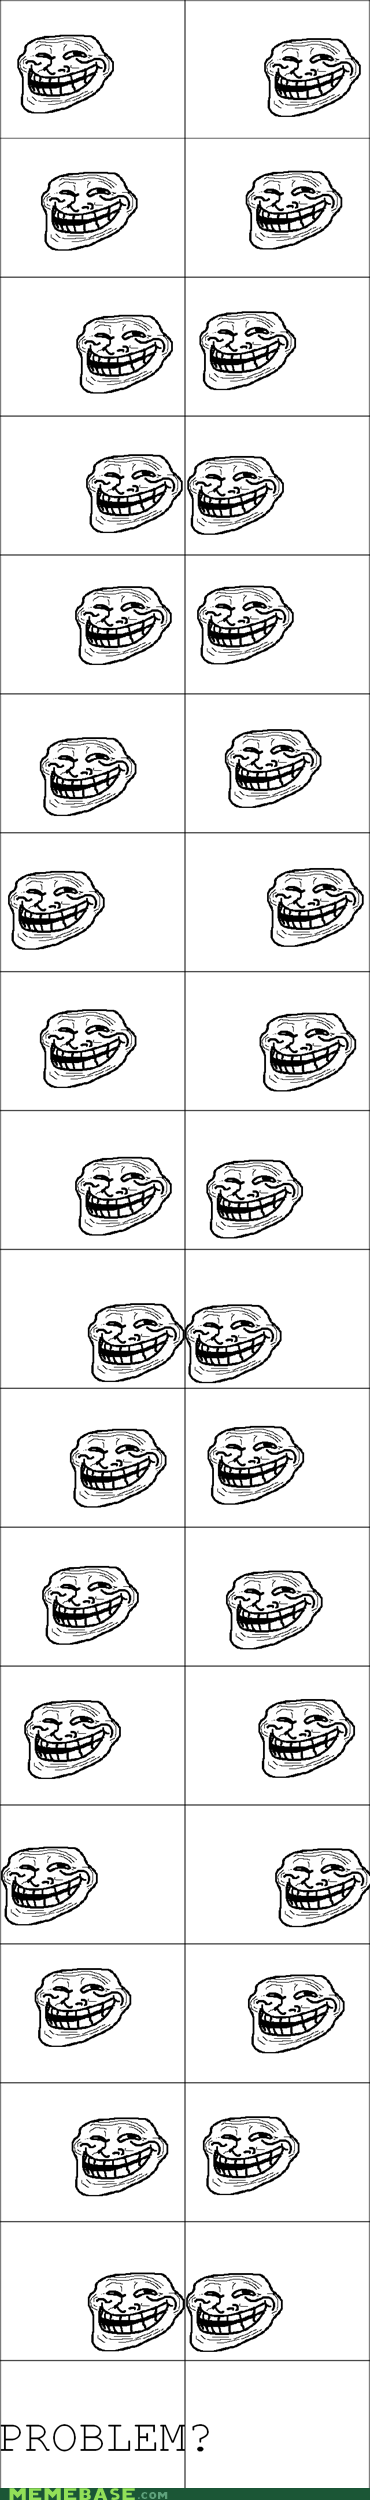 optical illusion,problem,Rage Comics,troll face